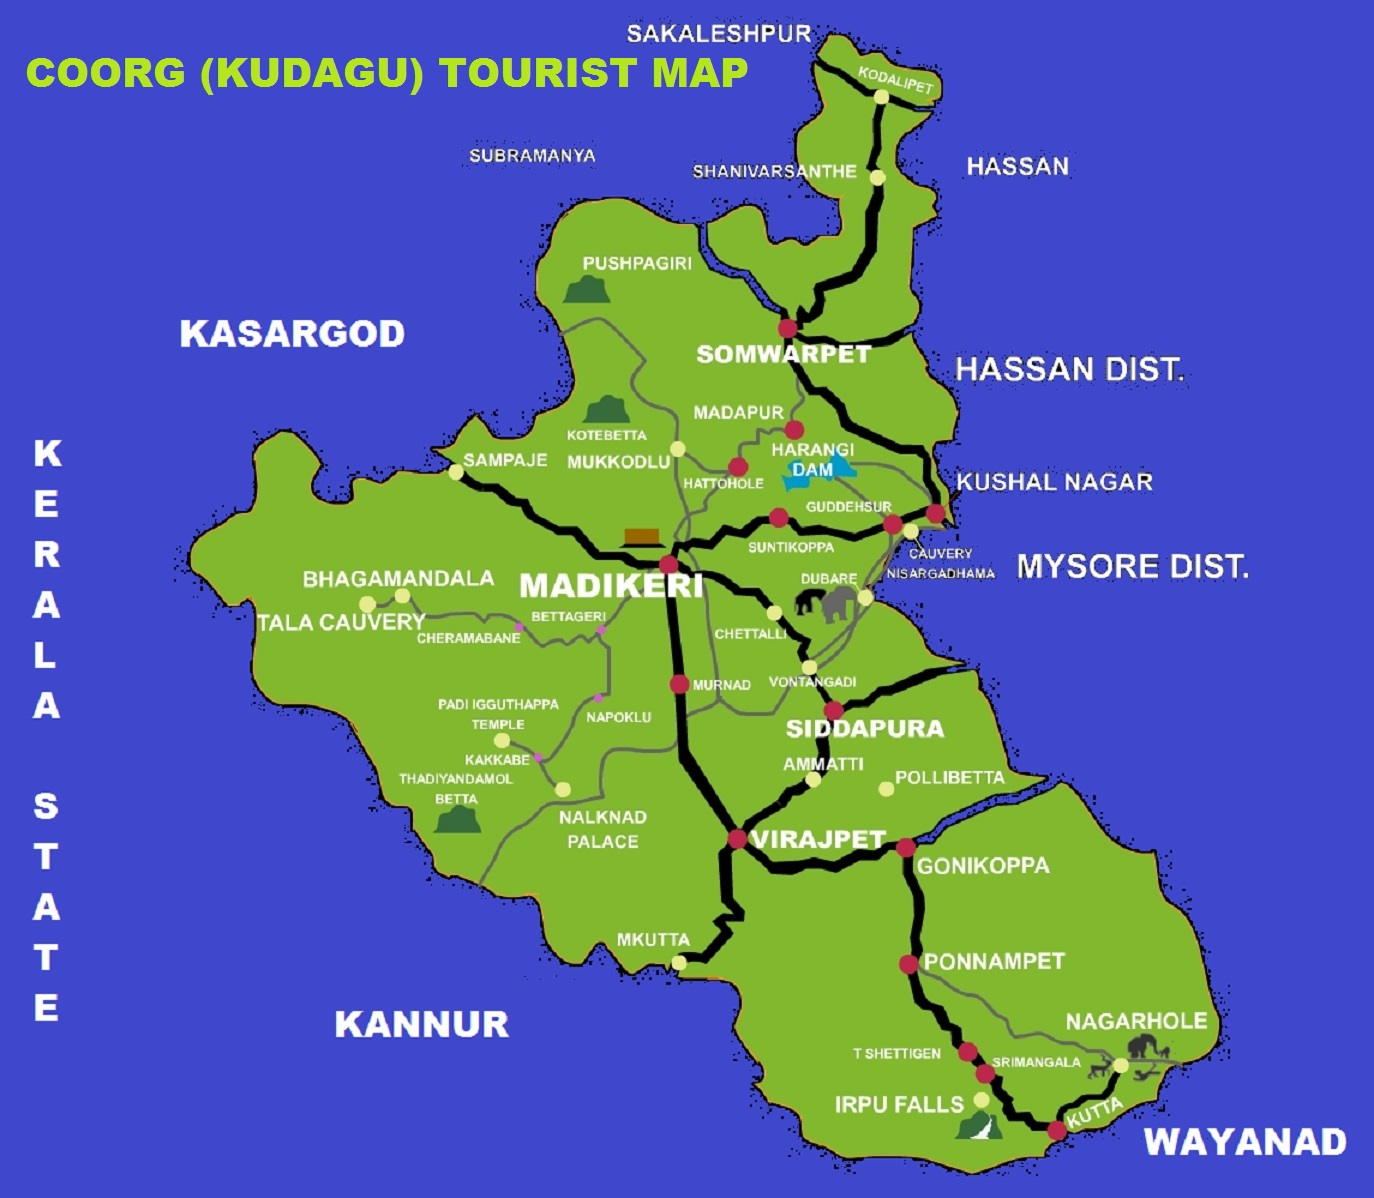 COORG TOURIST MAP MADIKERI TOURIST ATTRACTIONS IN COORG – South India Map With Tourist Places